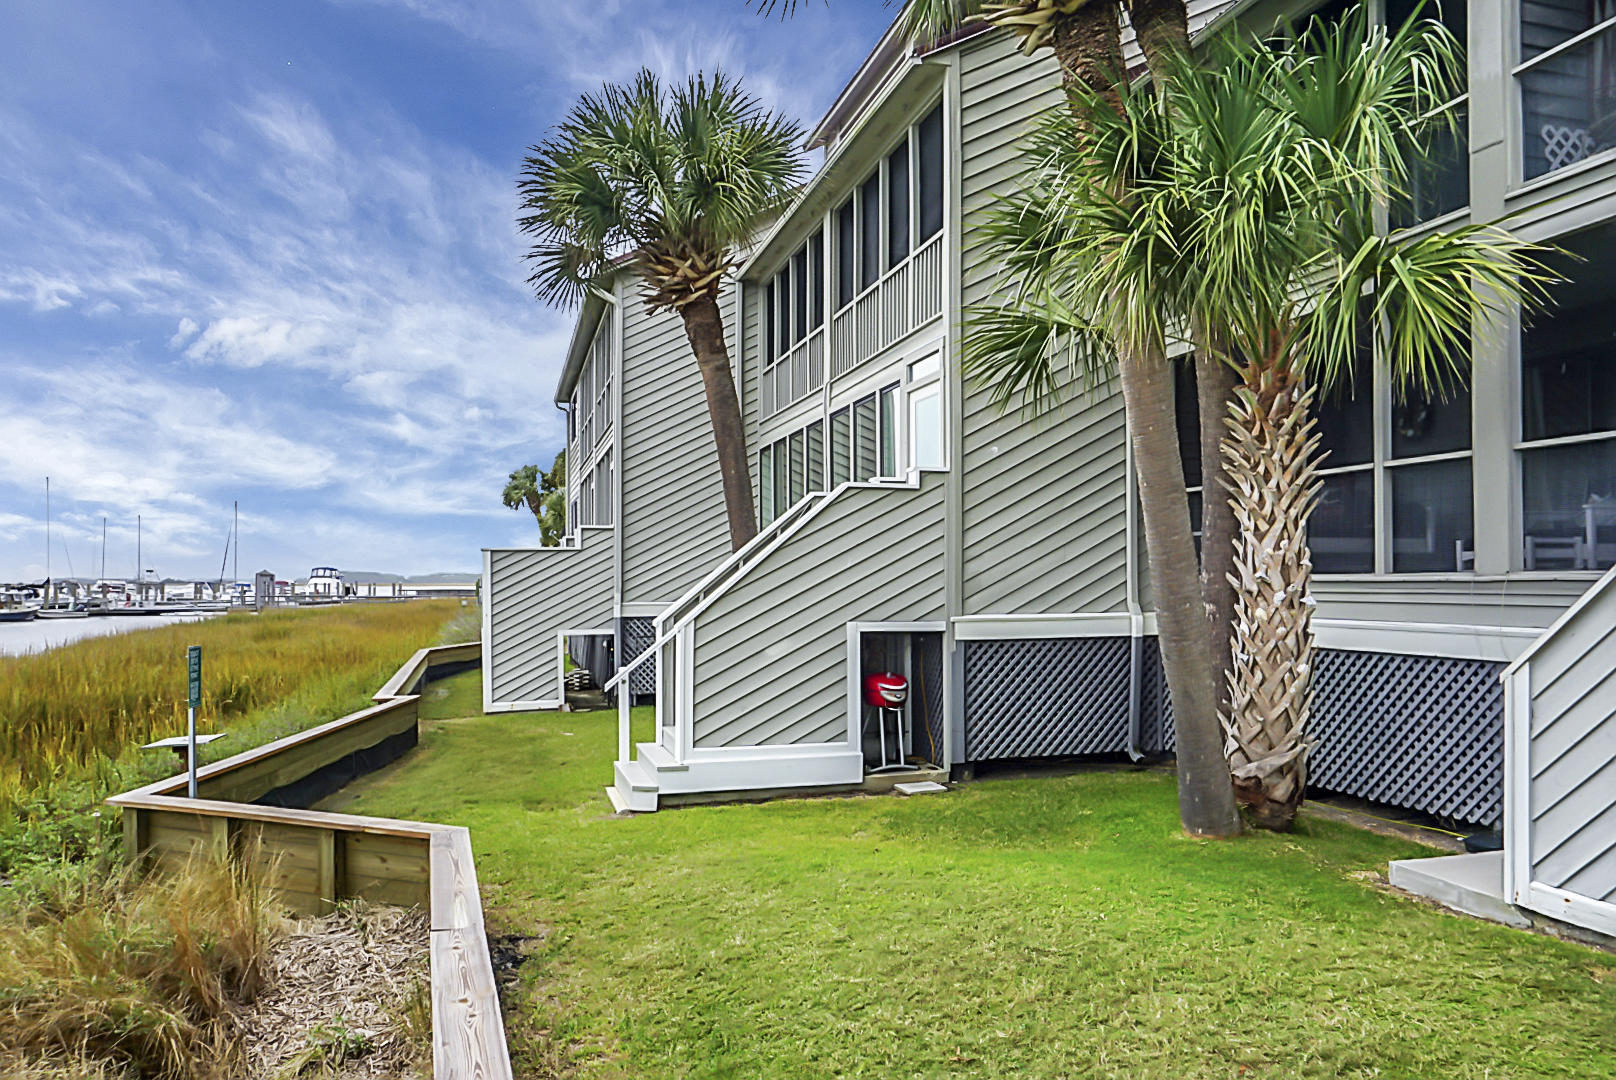 Mariners Cay Homes For Sale - 45 Mariners Cay, Folly Beach, SC - 1